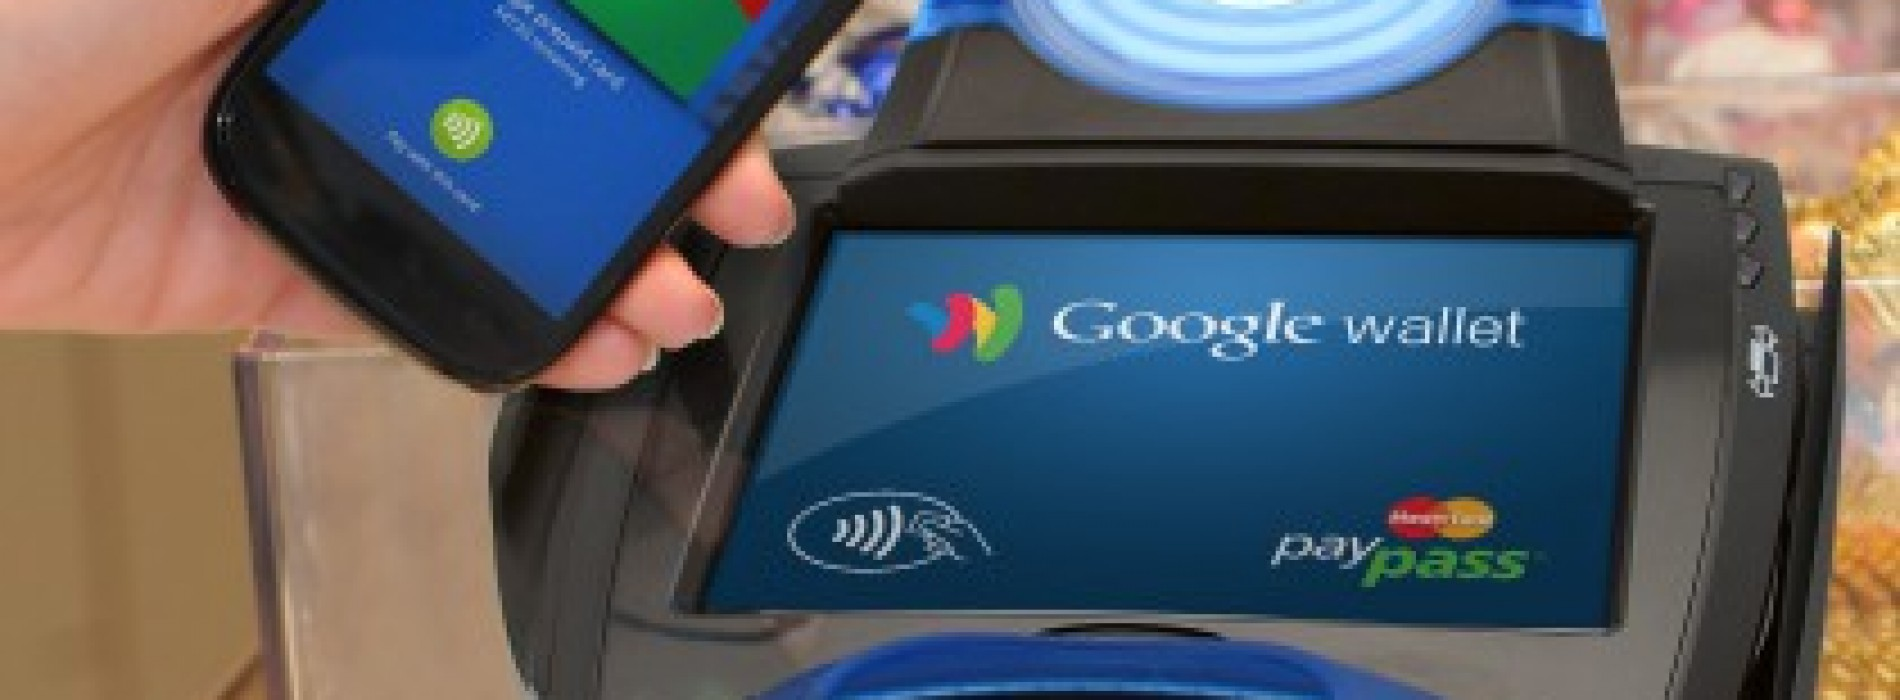 HTC Evo 4G LTE having issues with Google Wallet